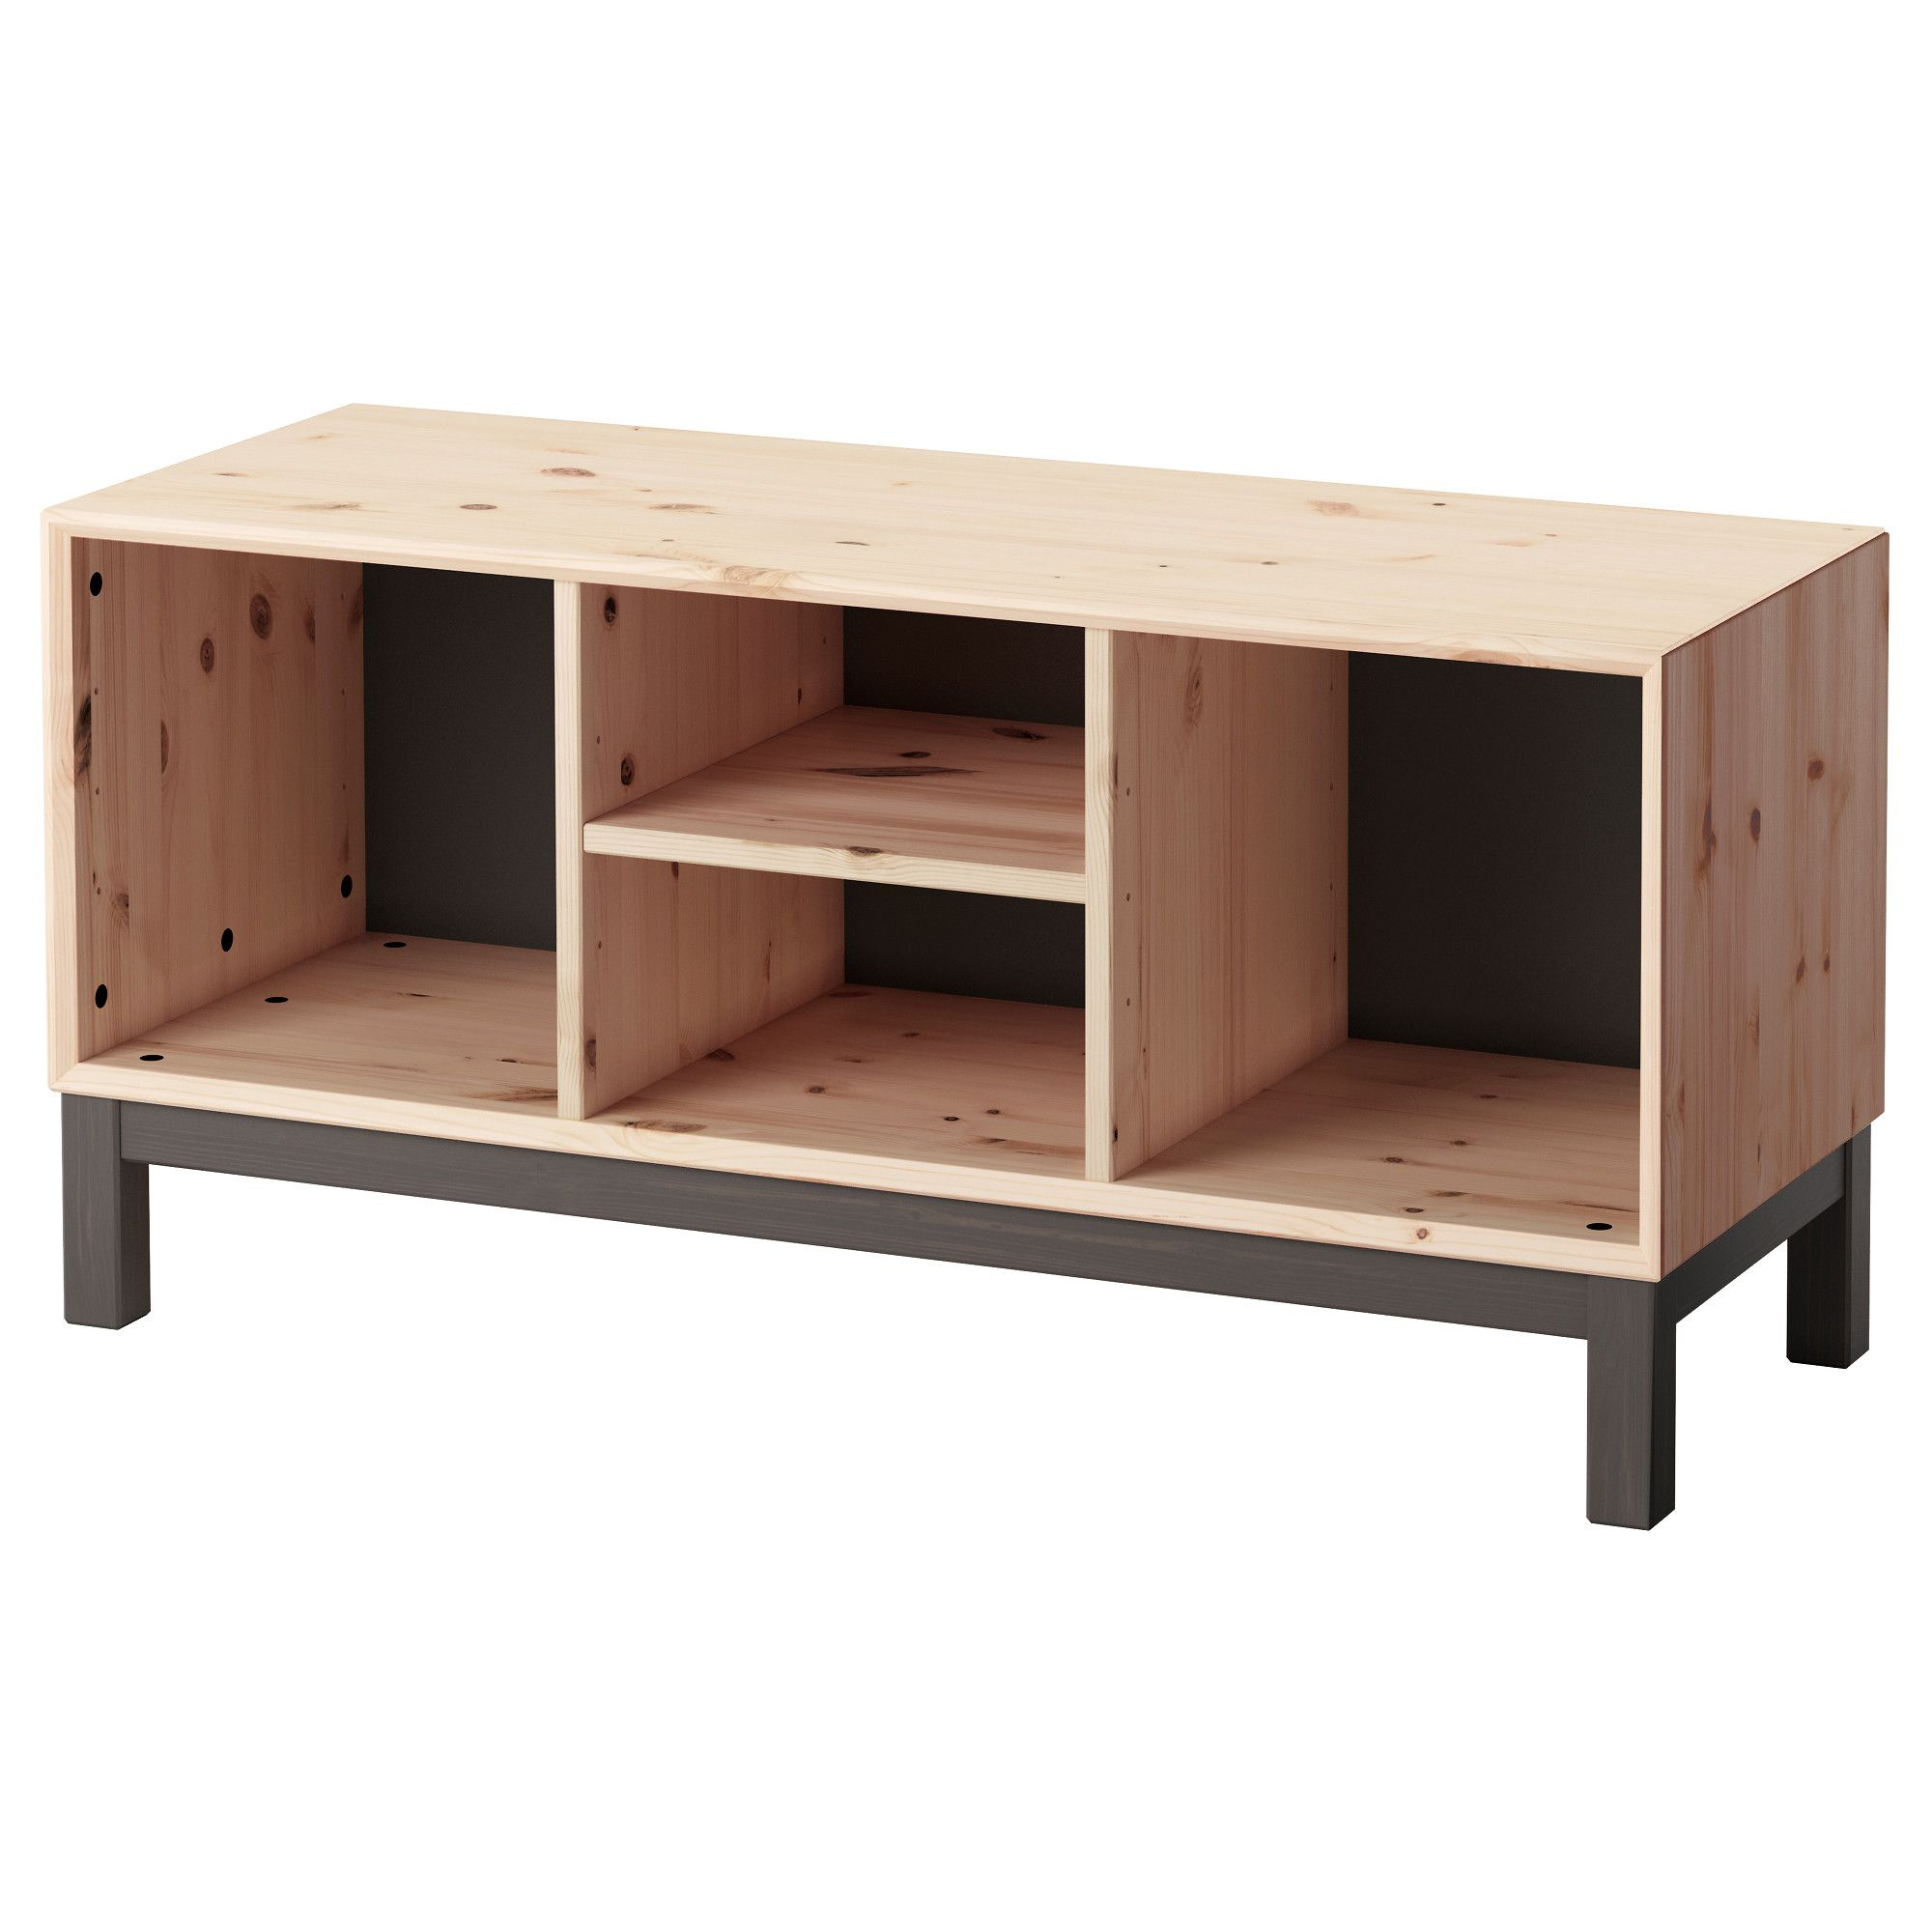 Amazing Ikea Nornas Bench With Storage Compartments Made Of Caraccident5 Cool Chair Designs And Ideas Caraccident5Info